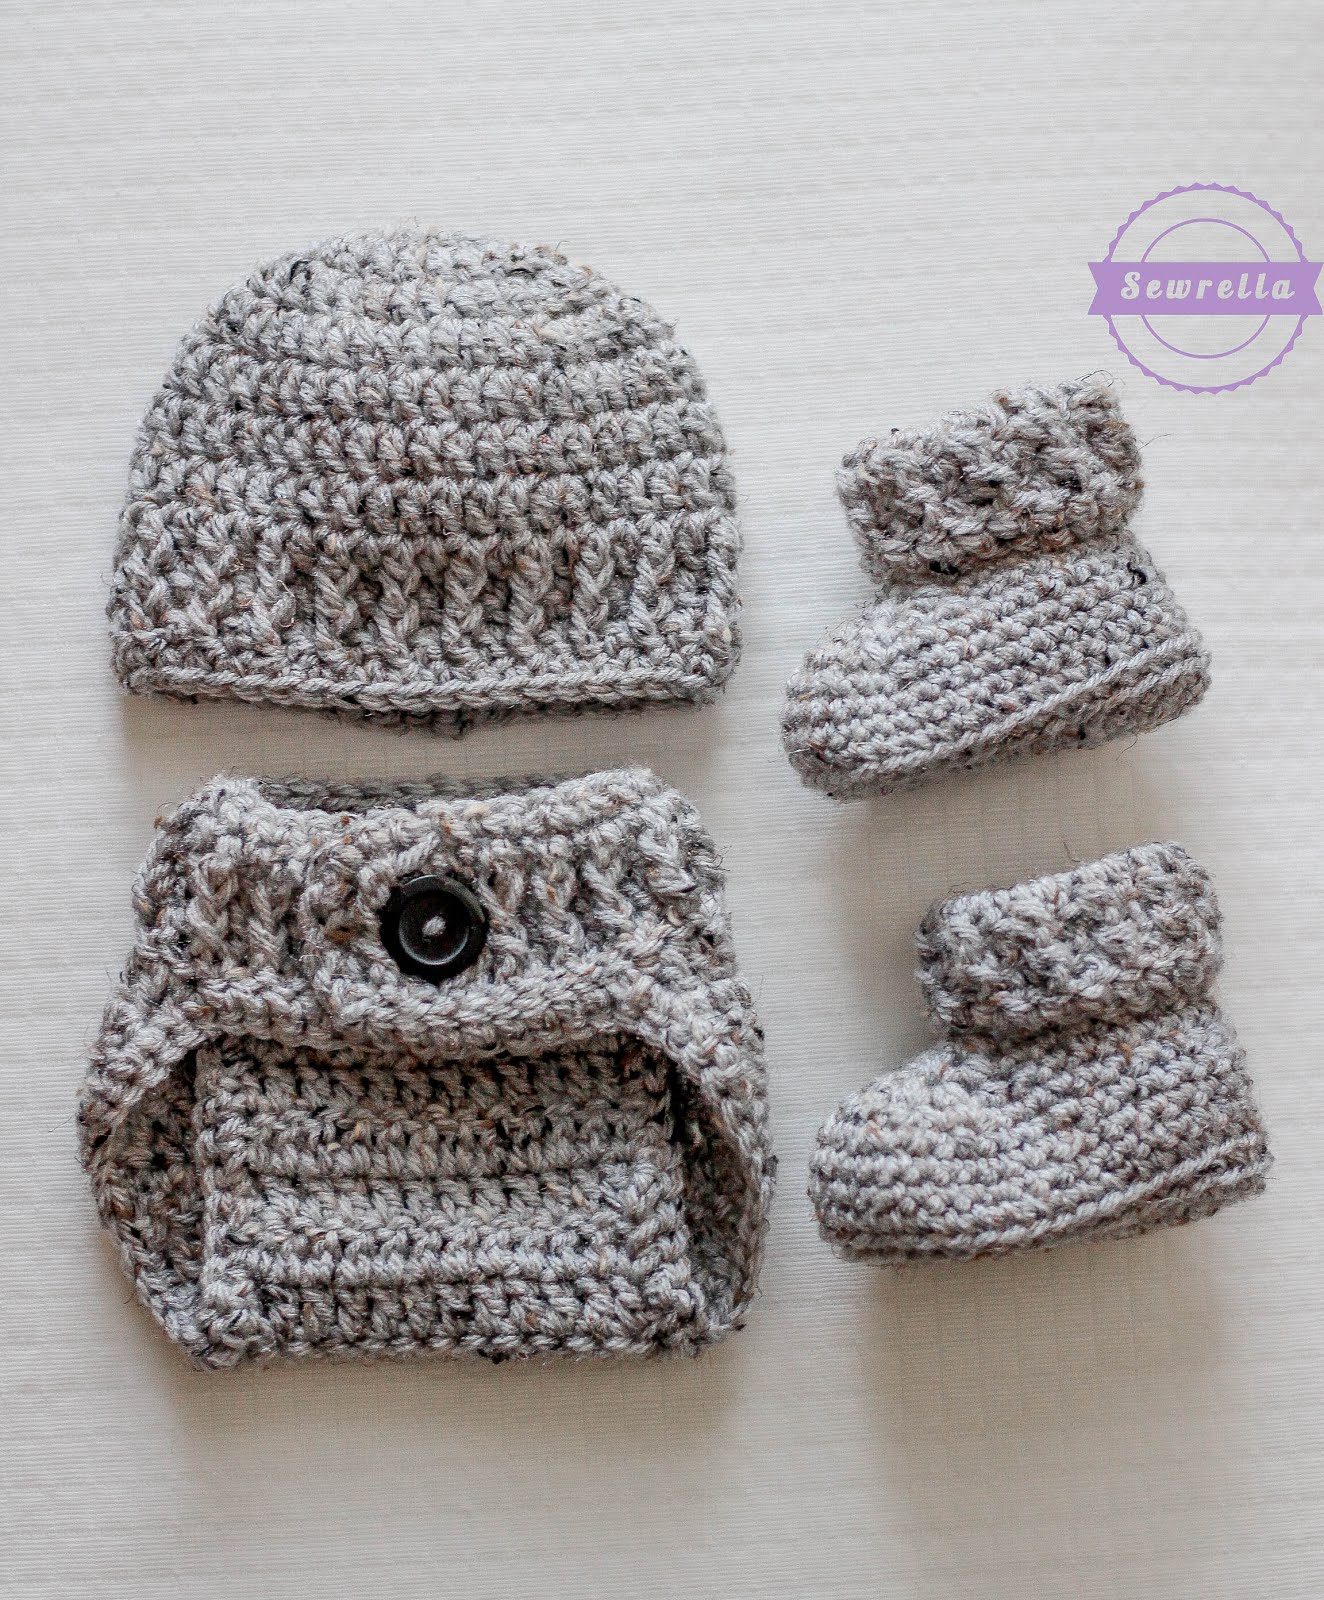 The Parker Crochet Diaper Cover - Sewrella